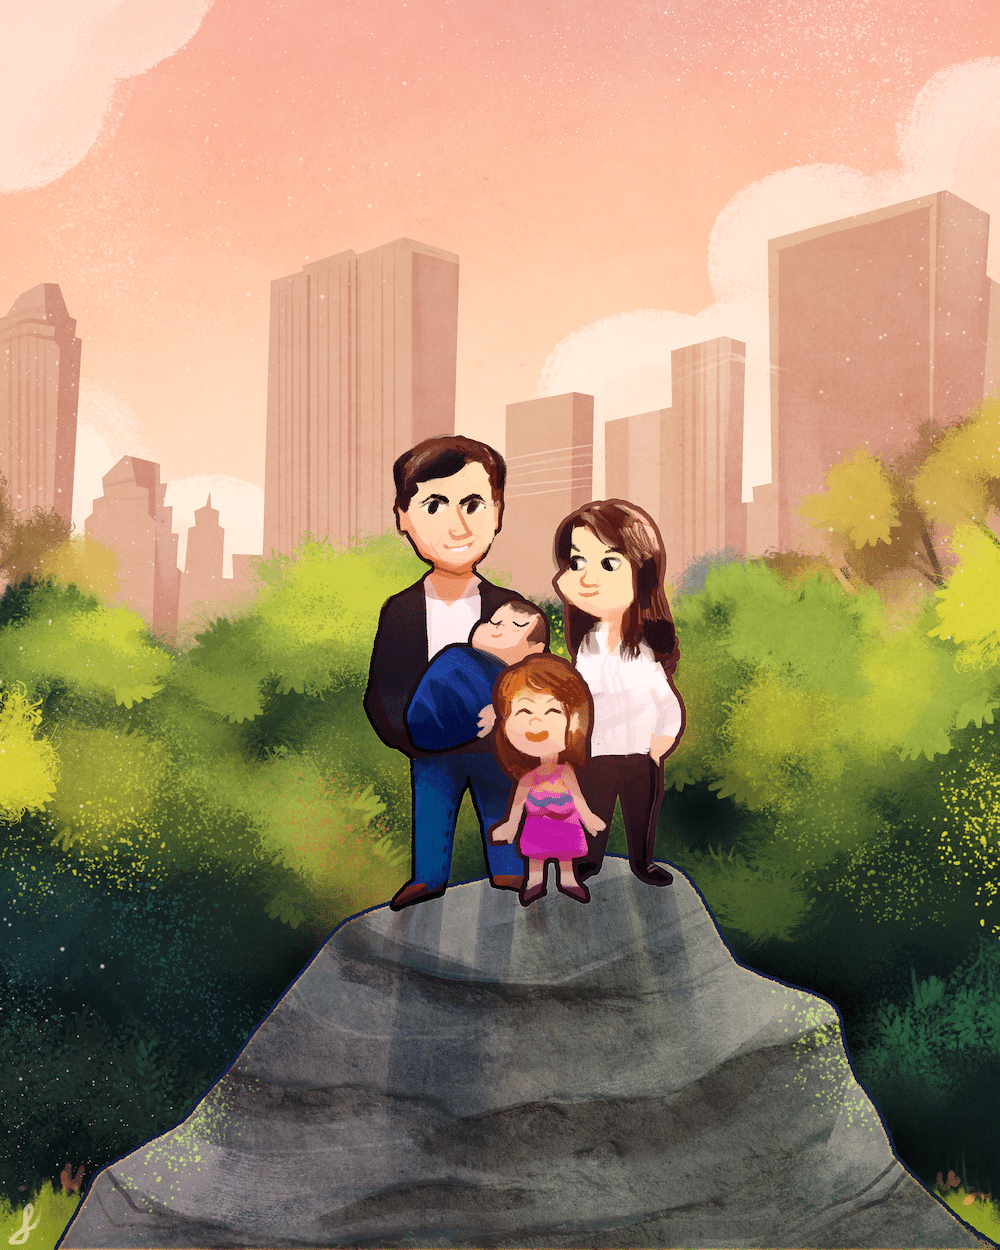 The New York Family by Louie Zong